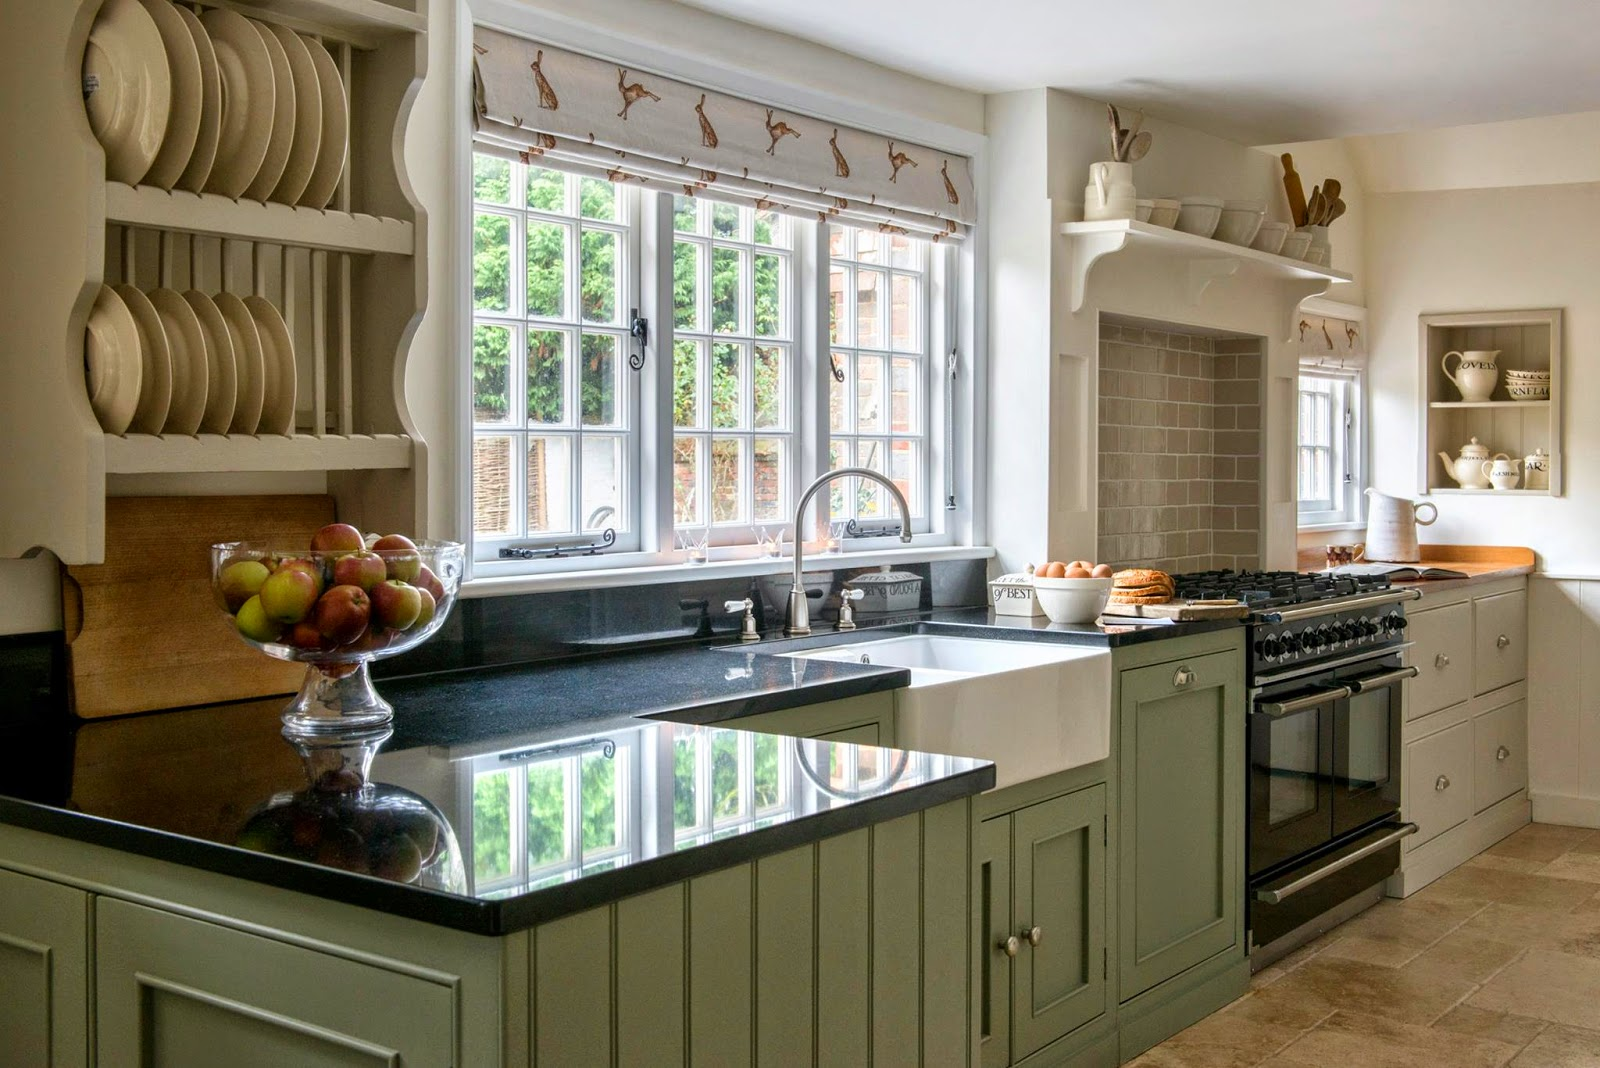 Modern Country Style Kitchen Cabinets Pictures Gallery Modern Country Style Modern Country Kitchen And Colour Scheme